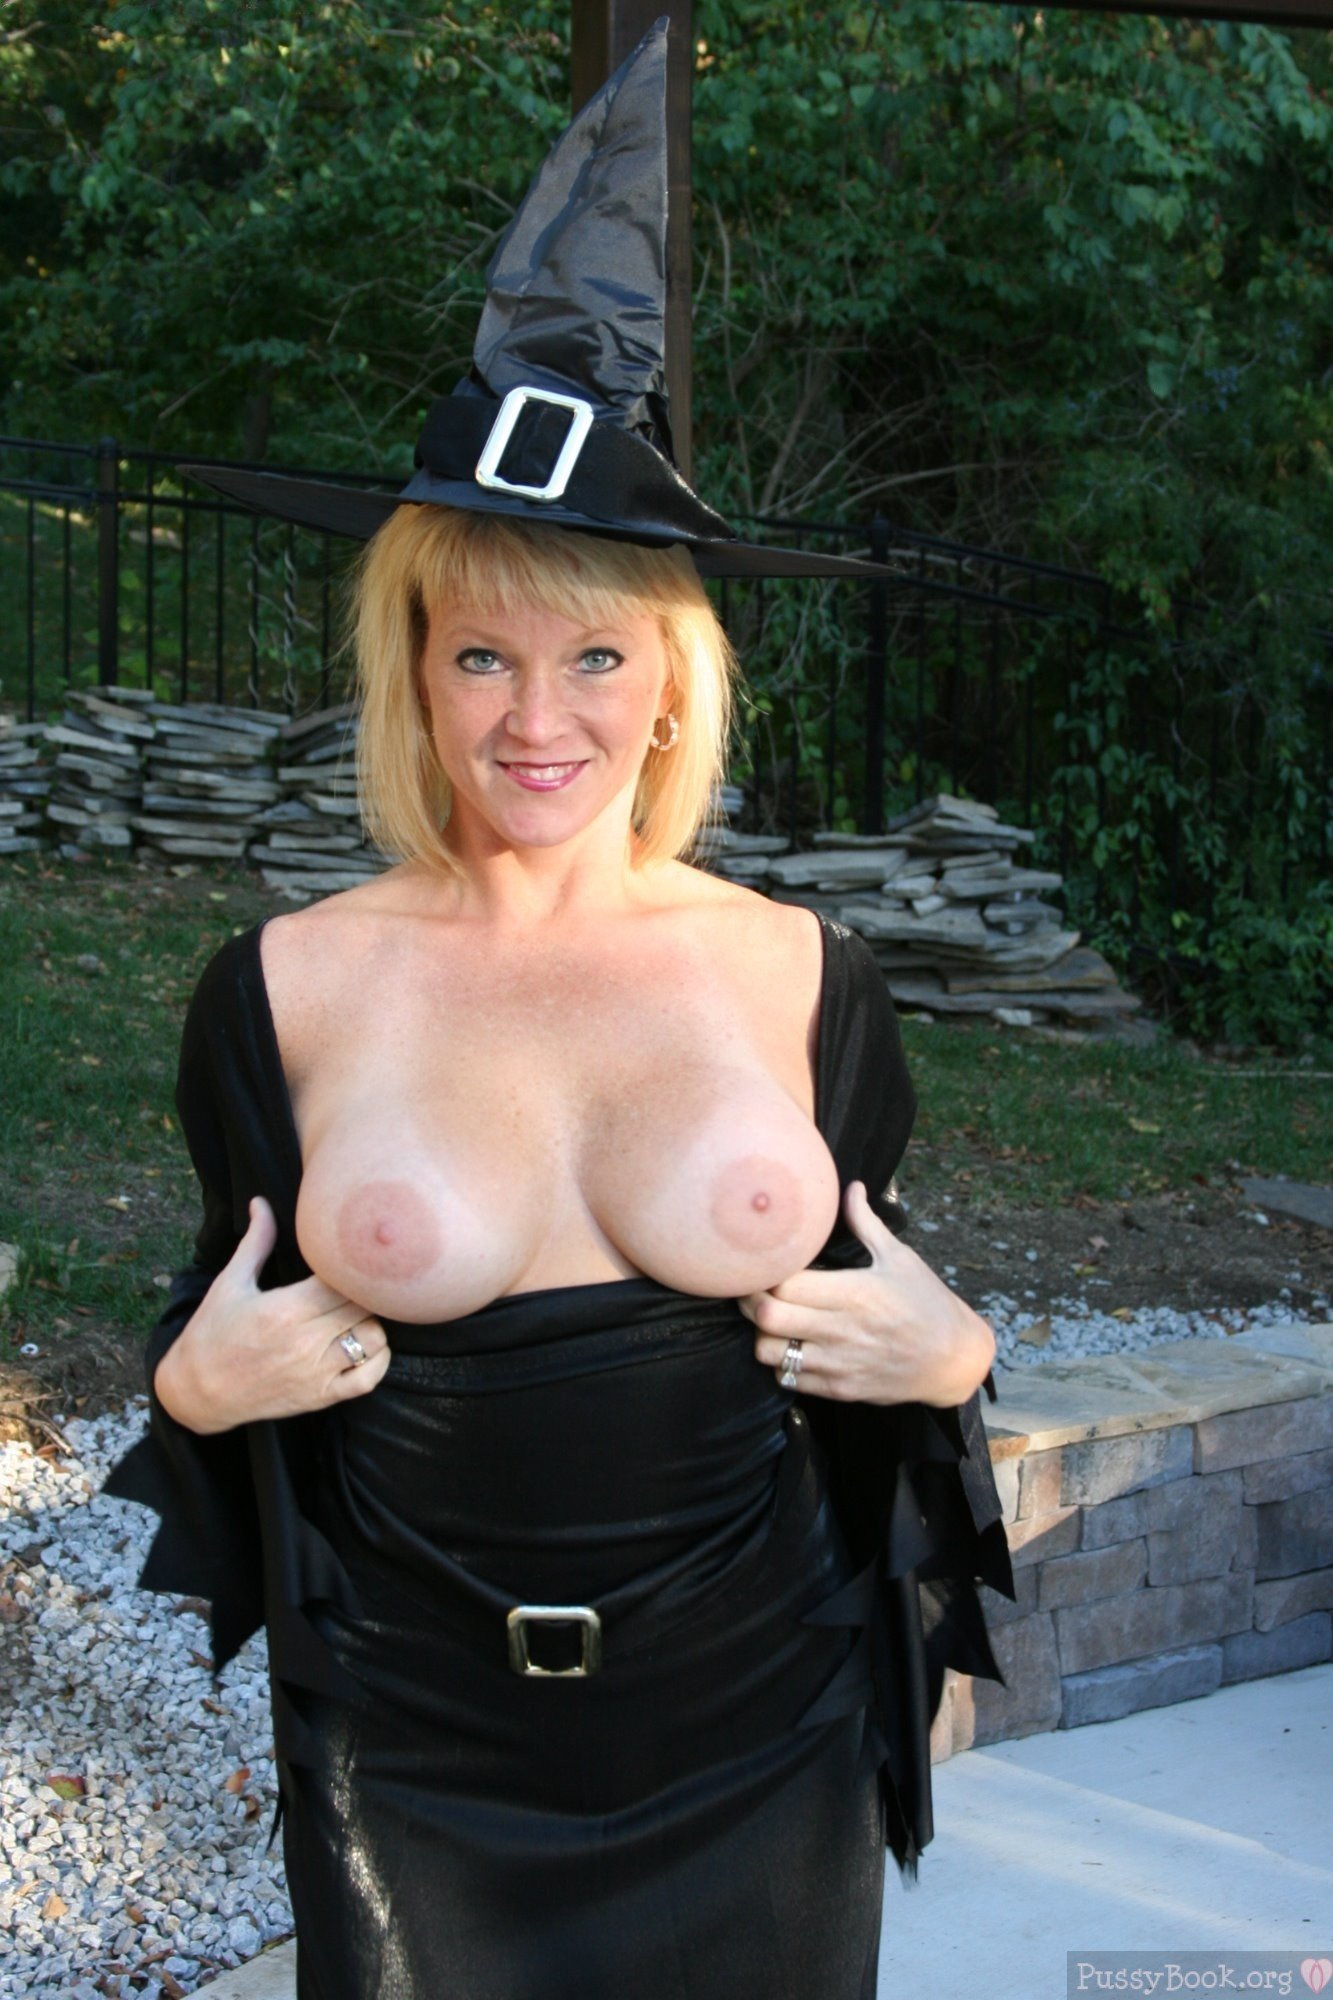 blonde-lady-witch-pop-out-boobs-halloween